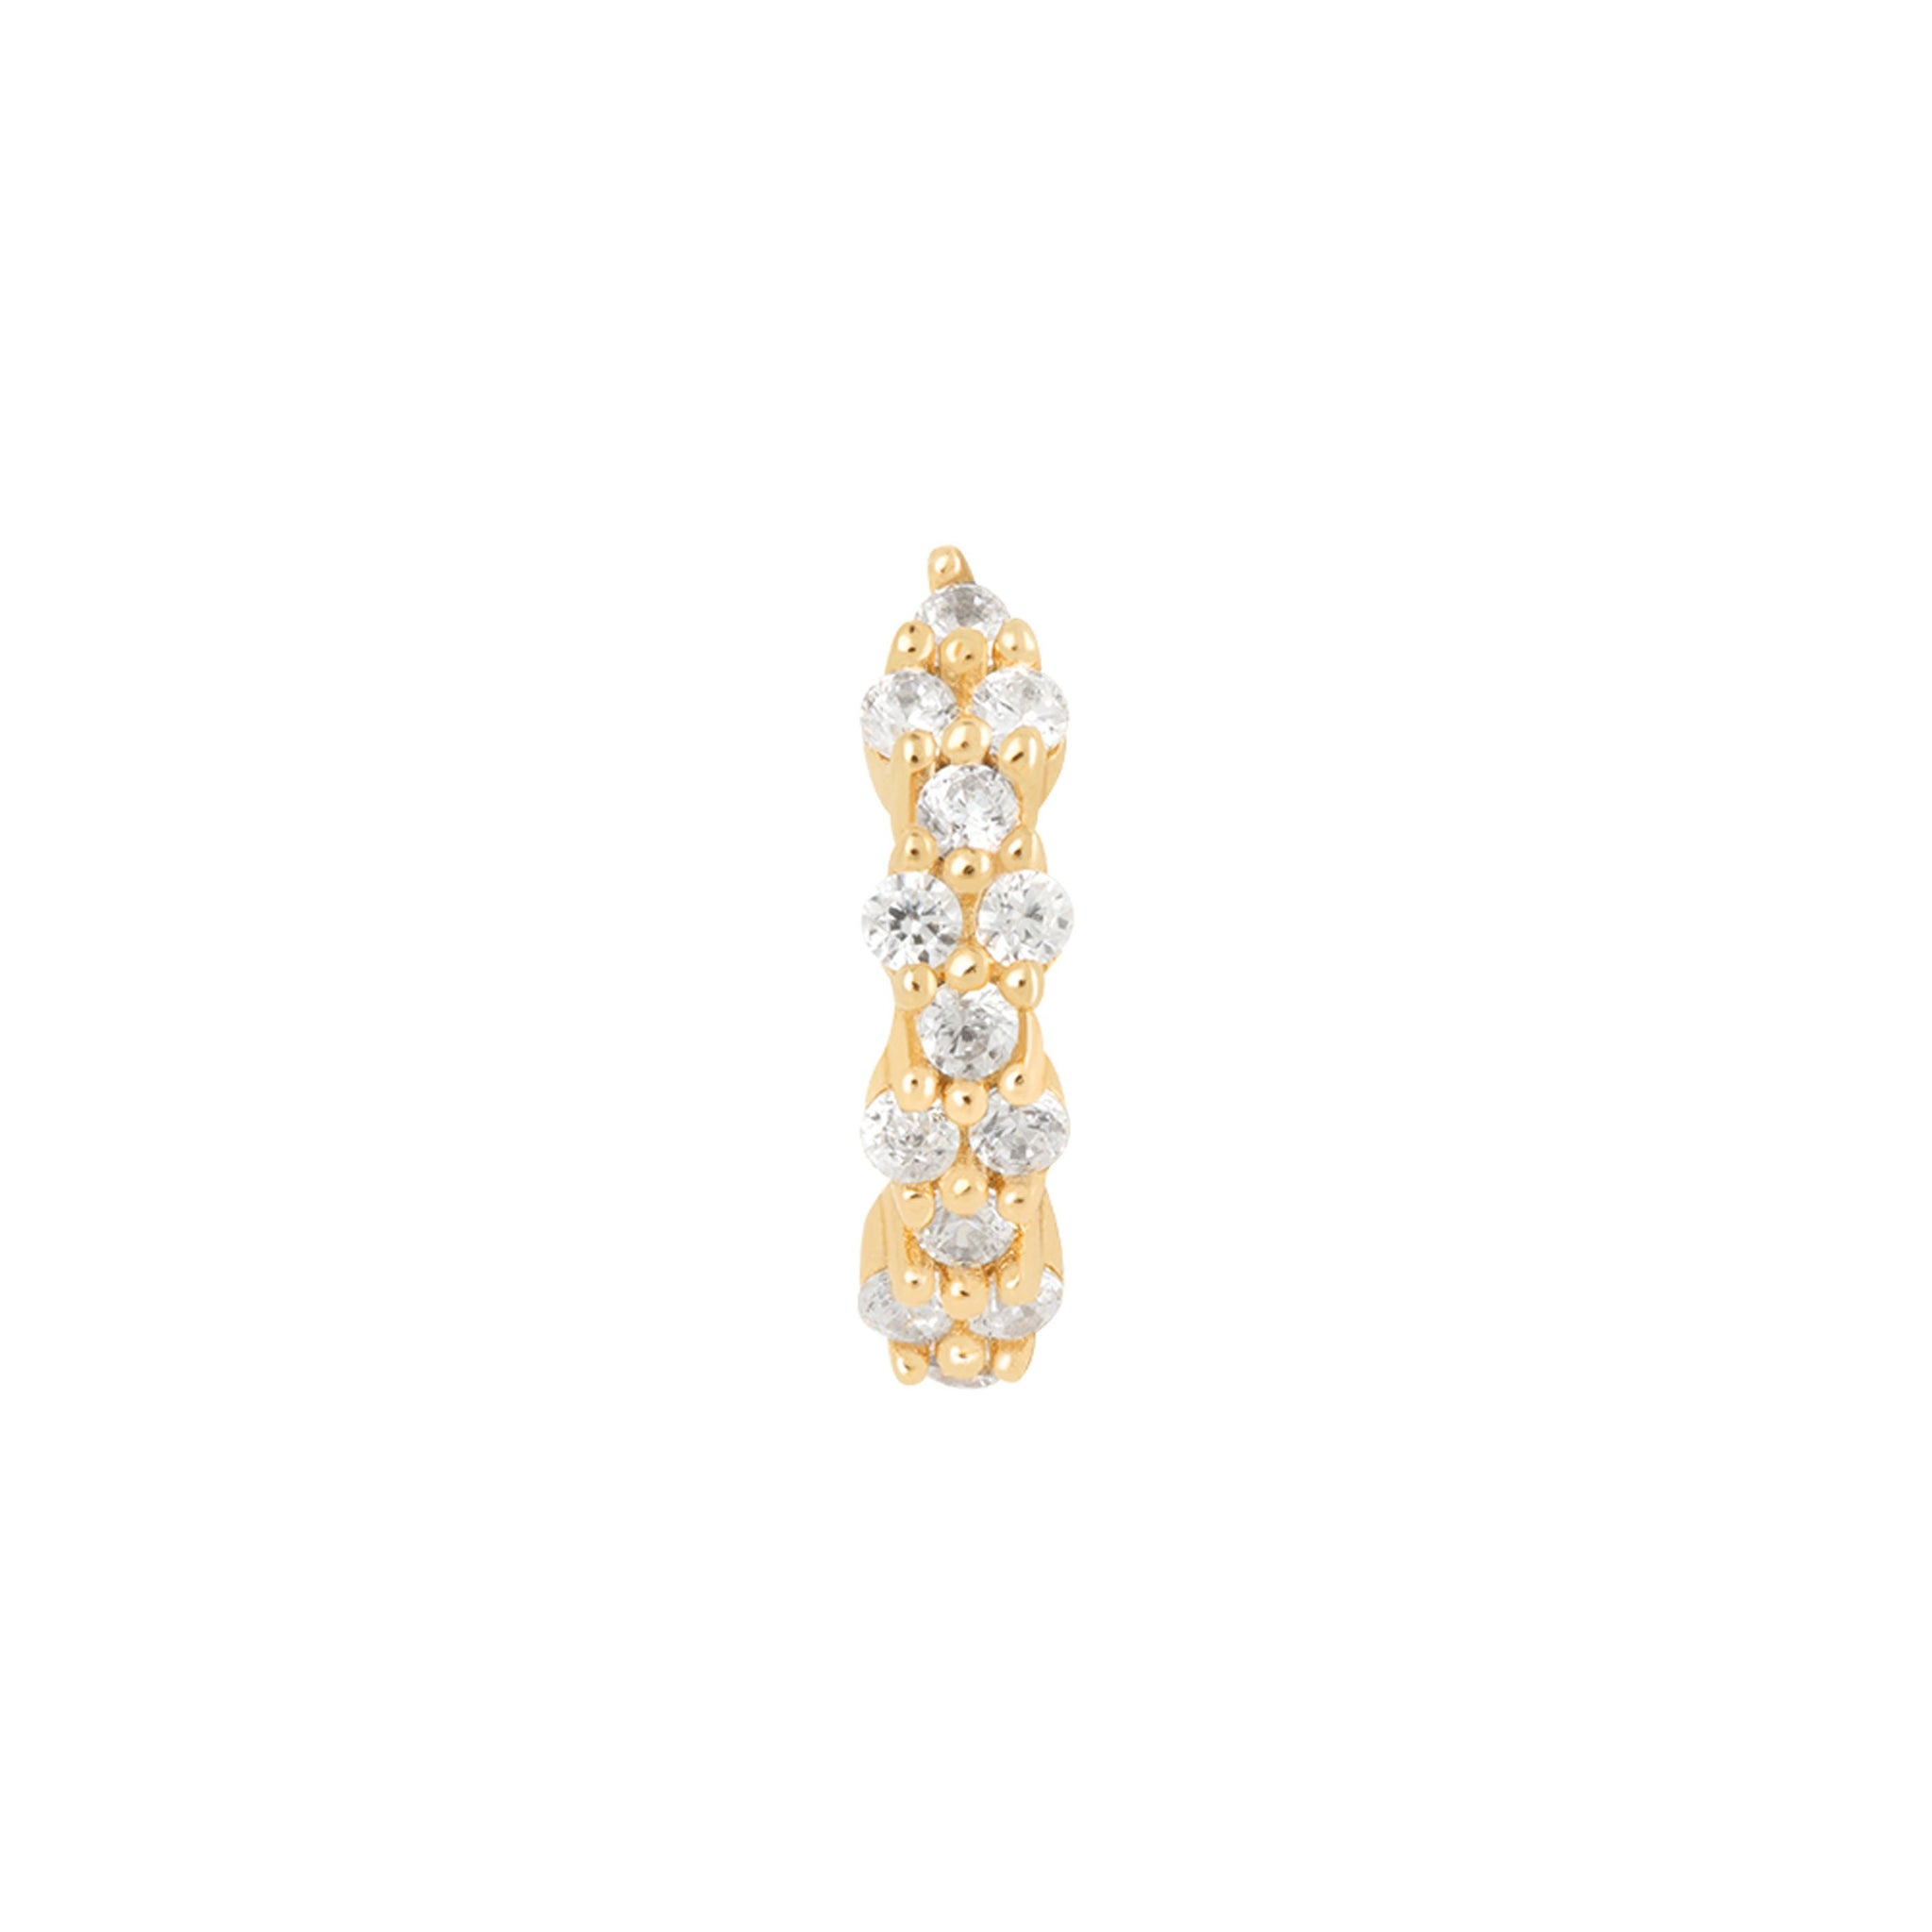 Dainty Crystal Clicker in Gold